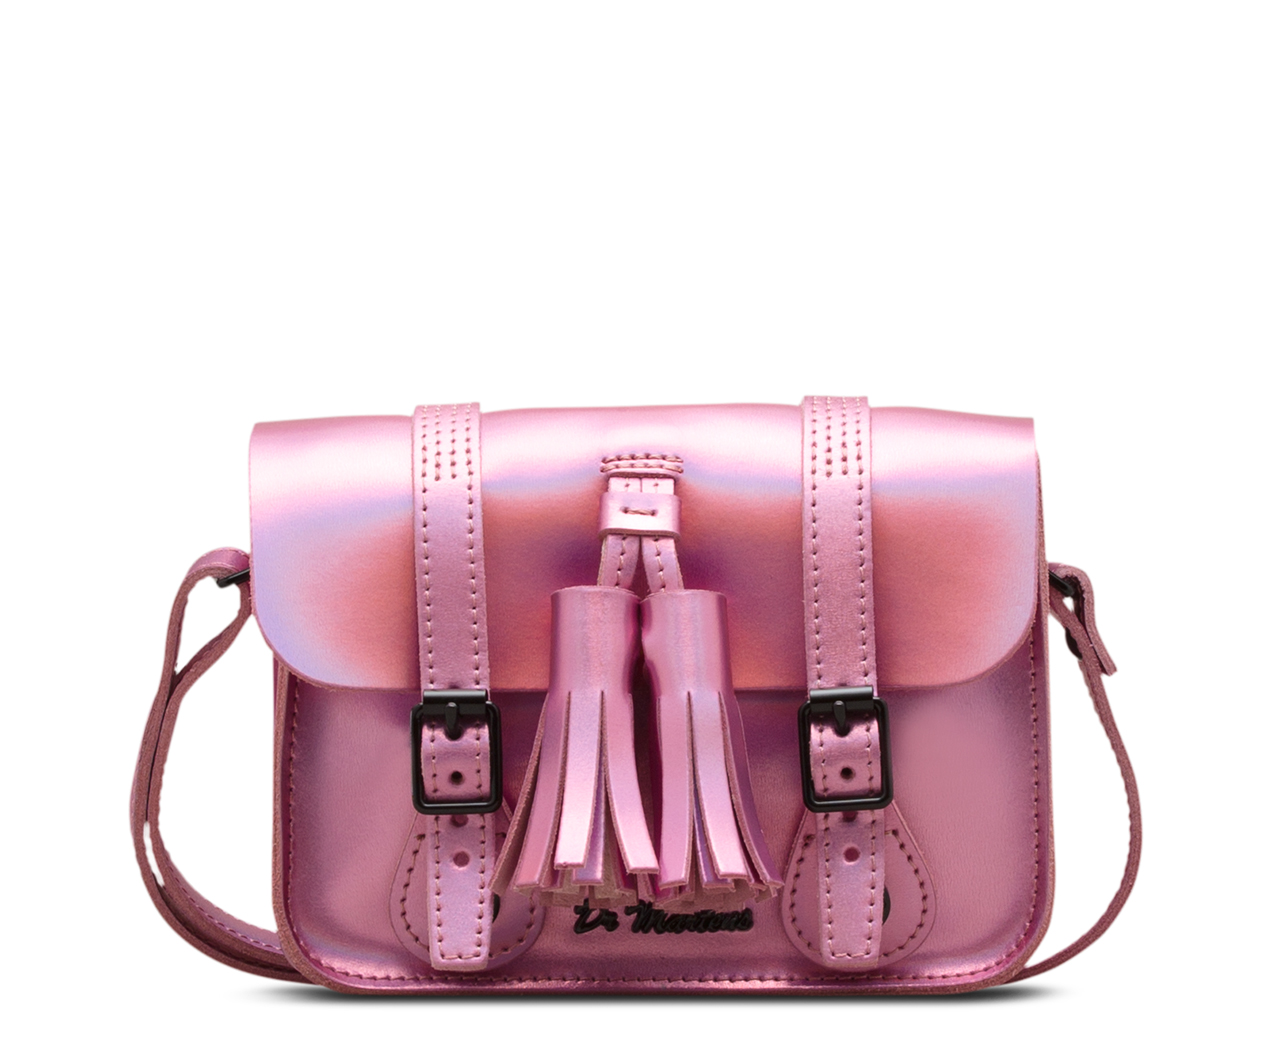 7 ICED METALLIC LEATHER SATCHEL